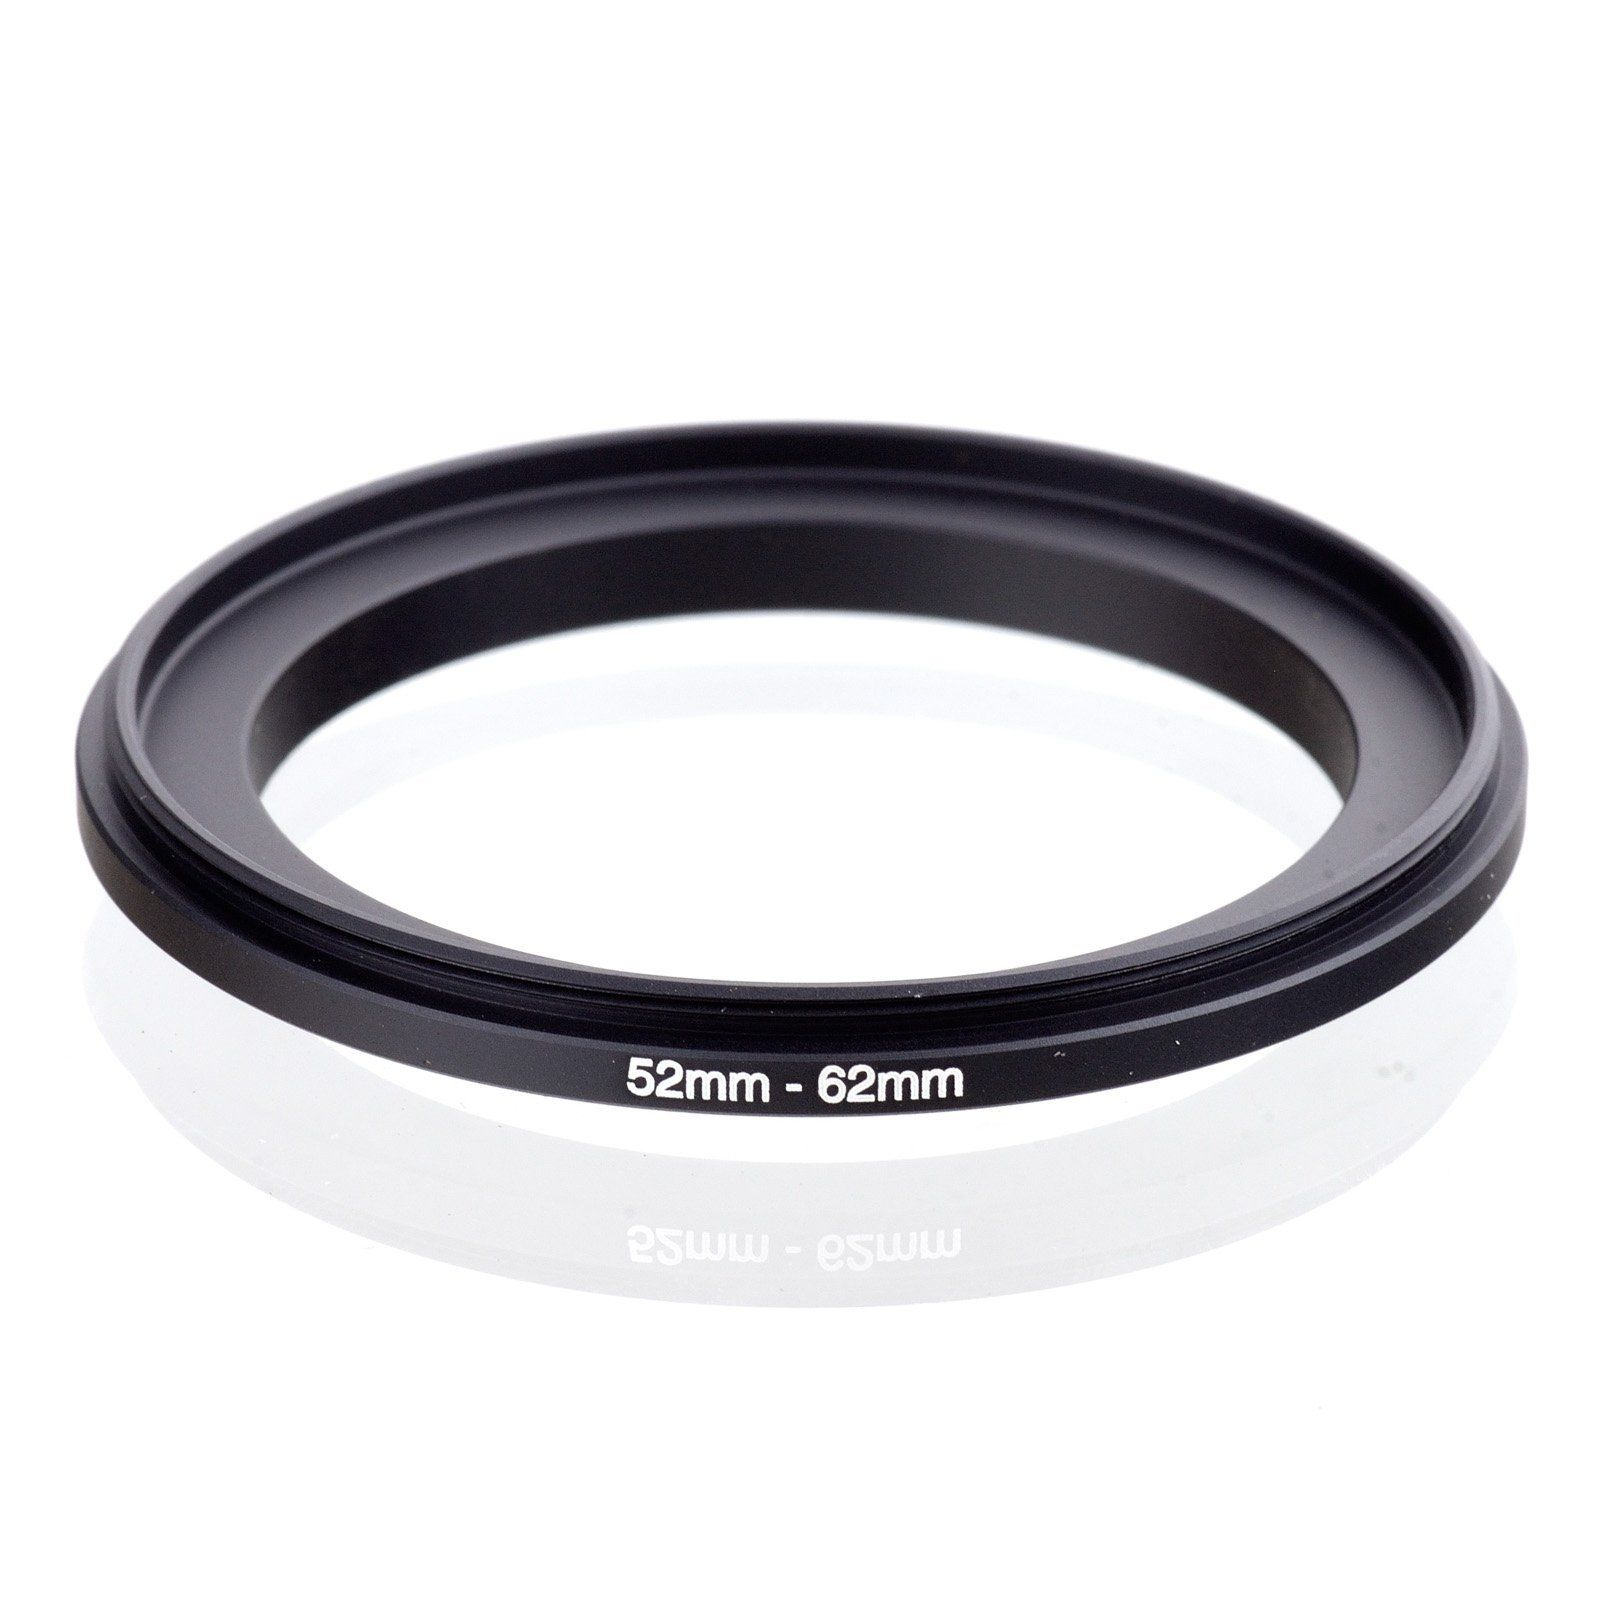 52mm-62mm 52-62 mm 52 to 62 mm 52mm to 62mm Step UP Ring Filter Adapter